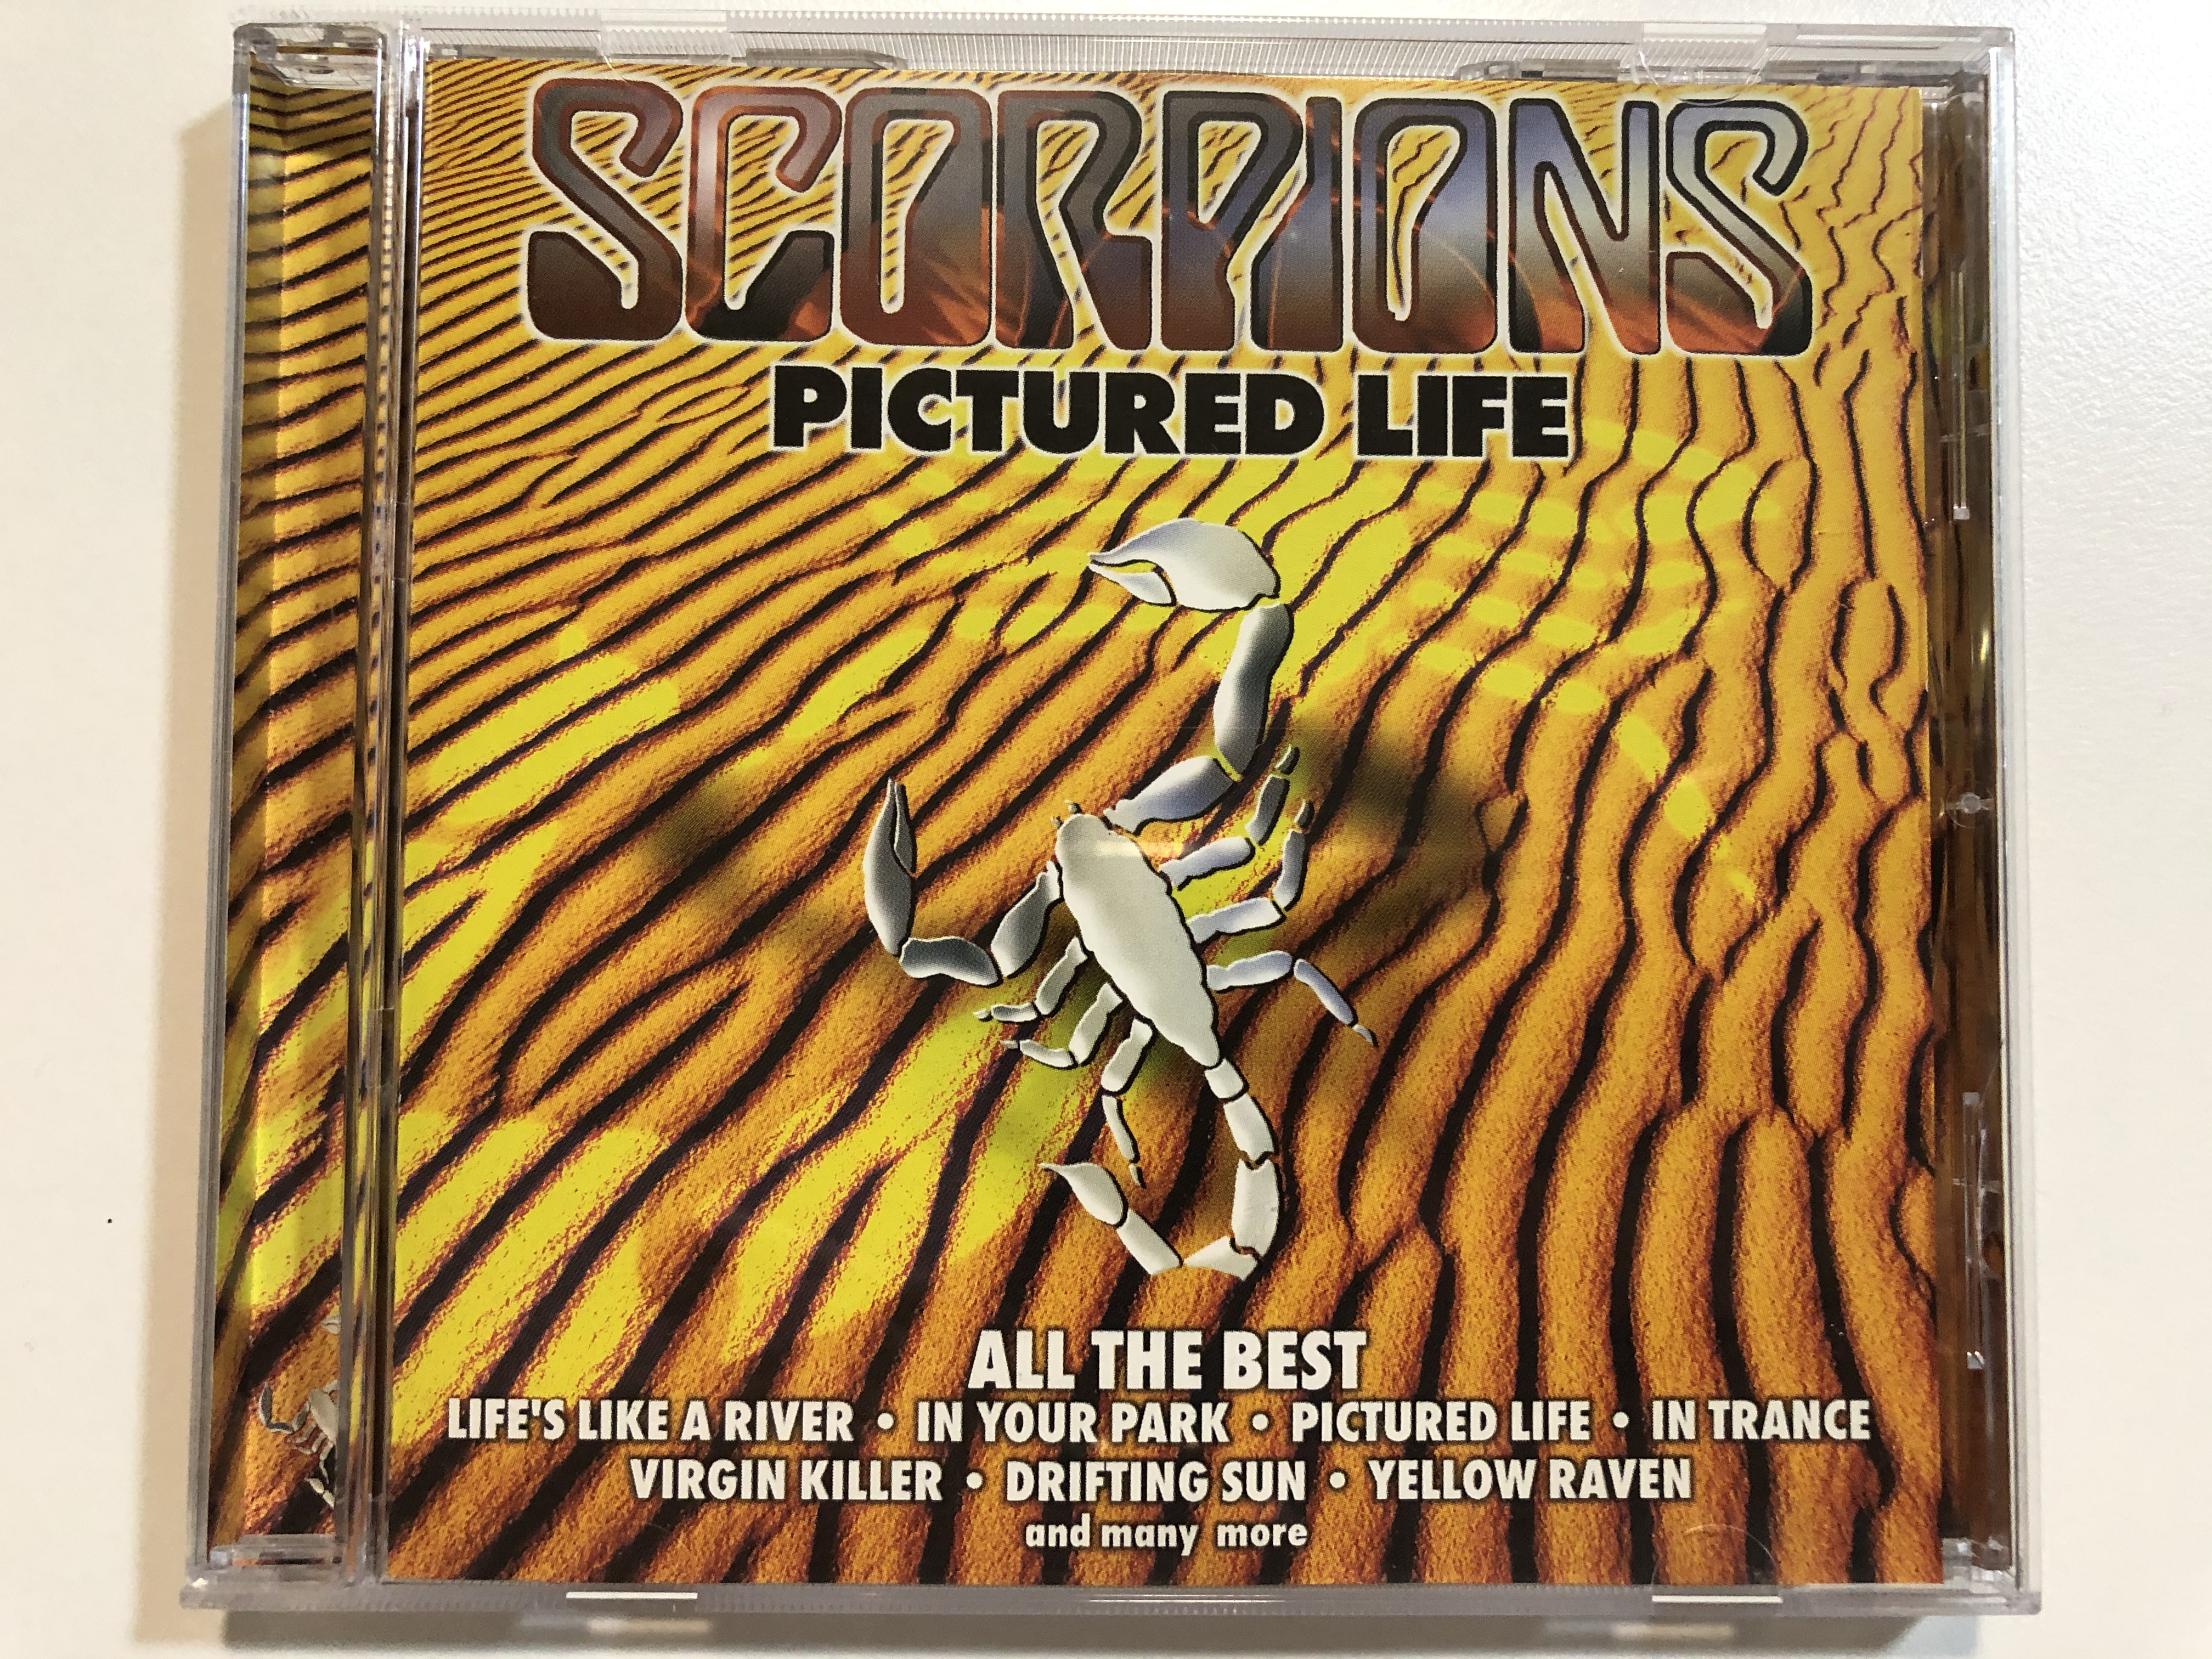 scorpions-pictured-life-all-the-best-life-s-like-a-river-in-your-park-pictured-life-in-trance-virgin-killer-drifting-sun-yellow-raven-and-many-more-bmg-audio-cd-2000-stereo-74321-1-.jpg